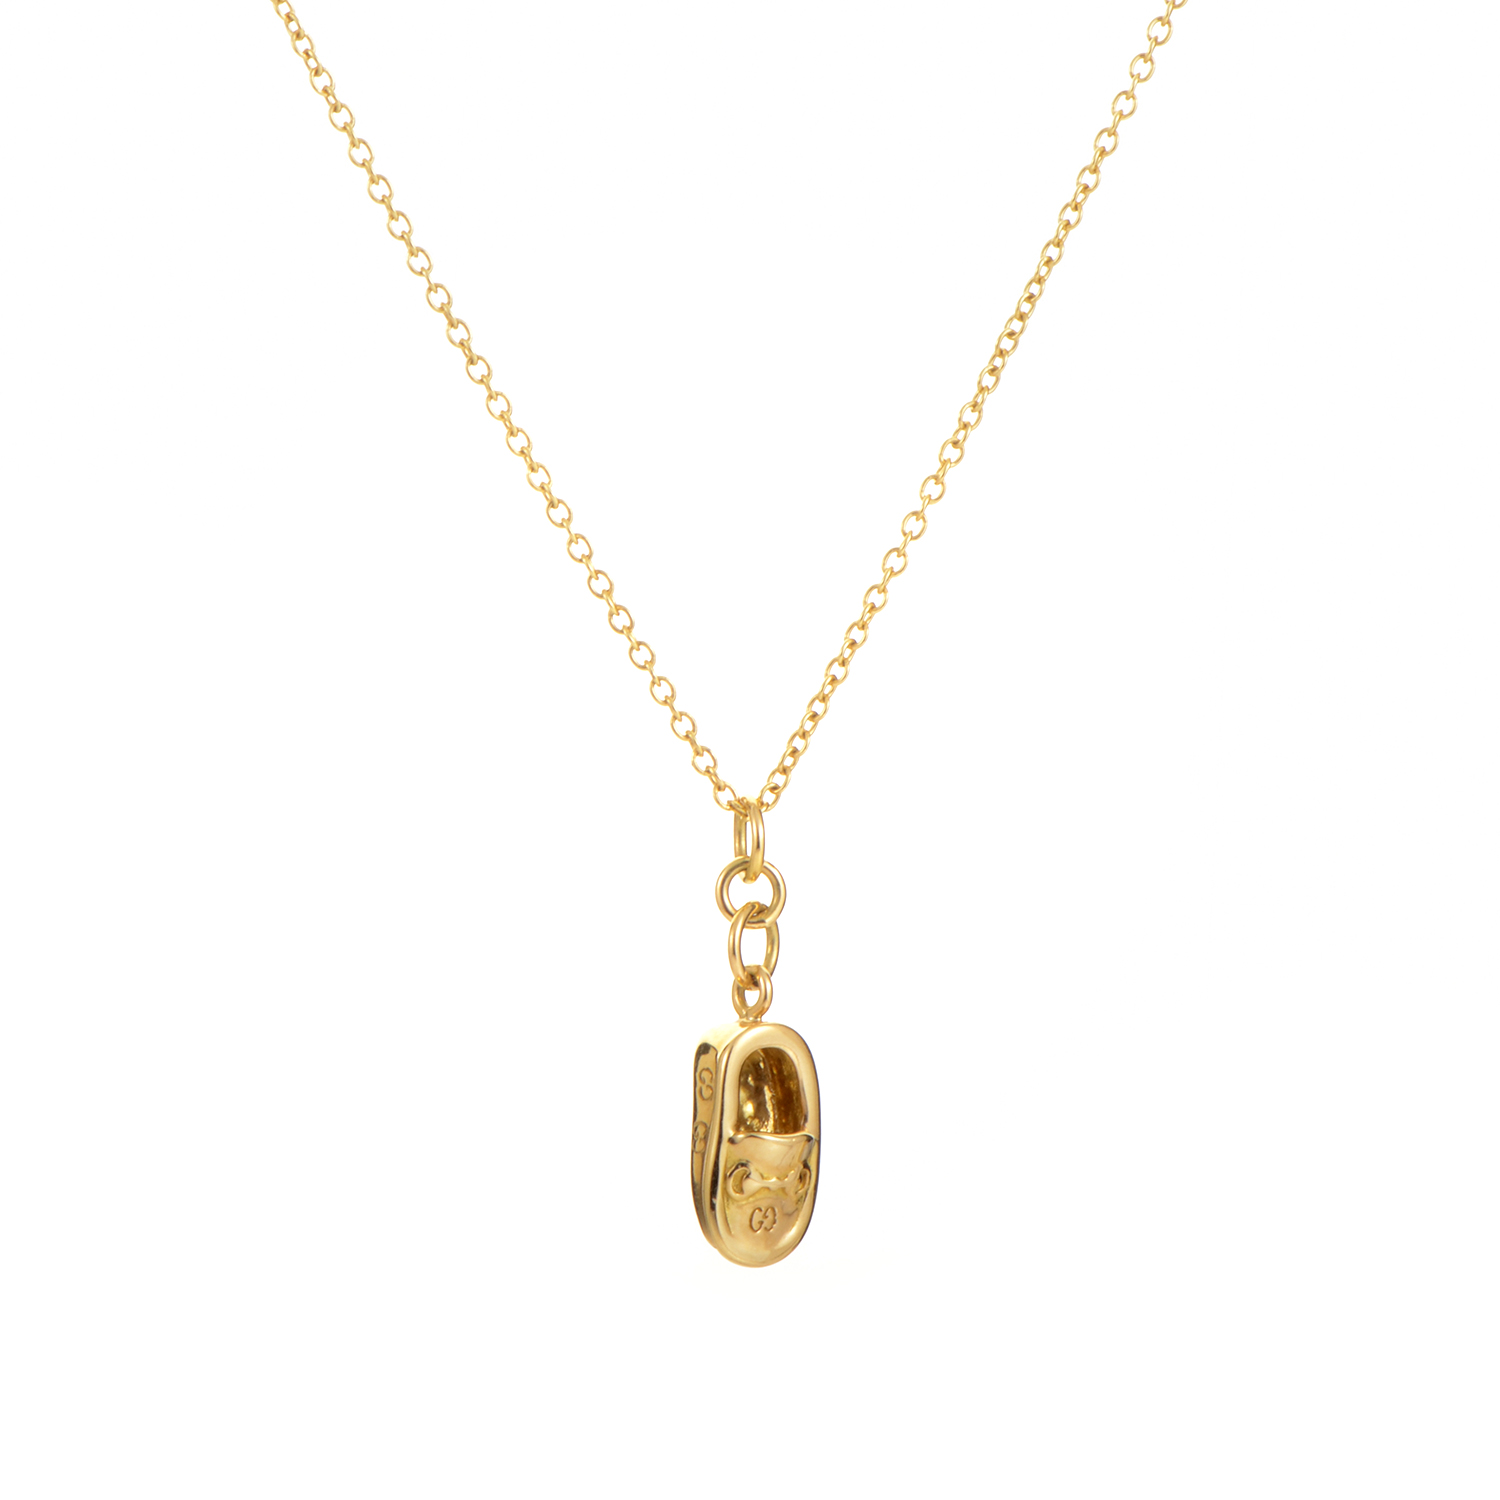 Women's 18K Yellow Gold Loafer Pendant Necklace